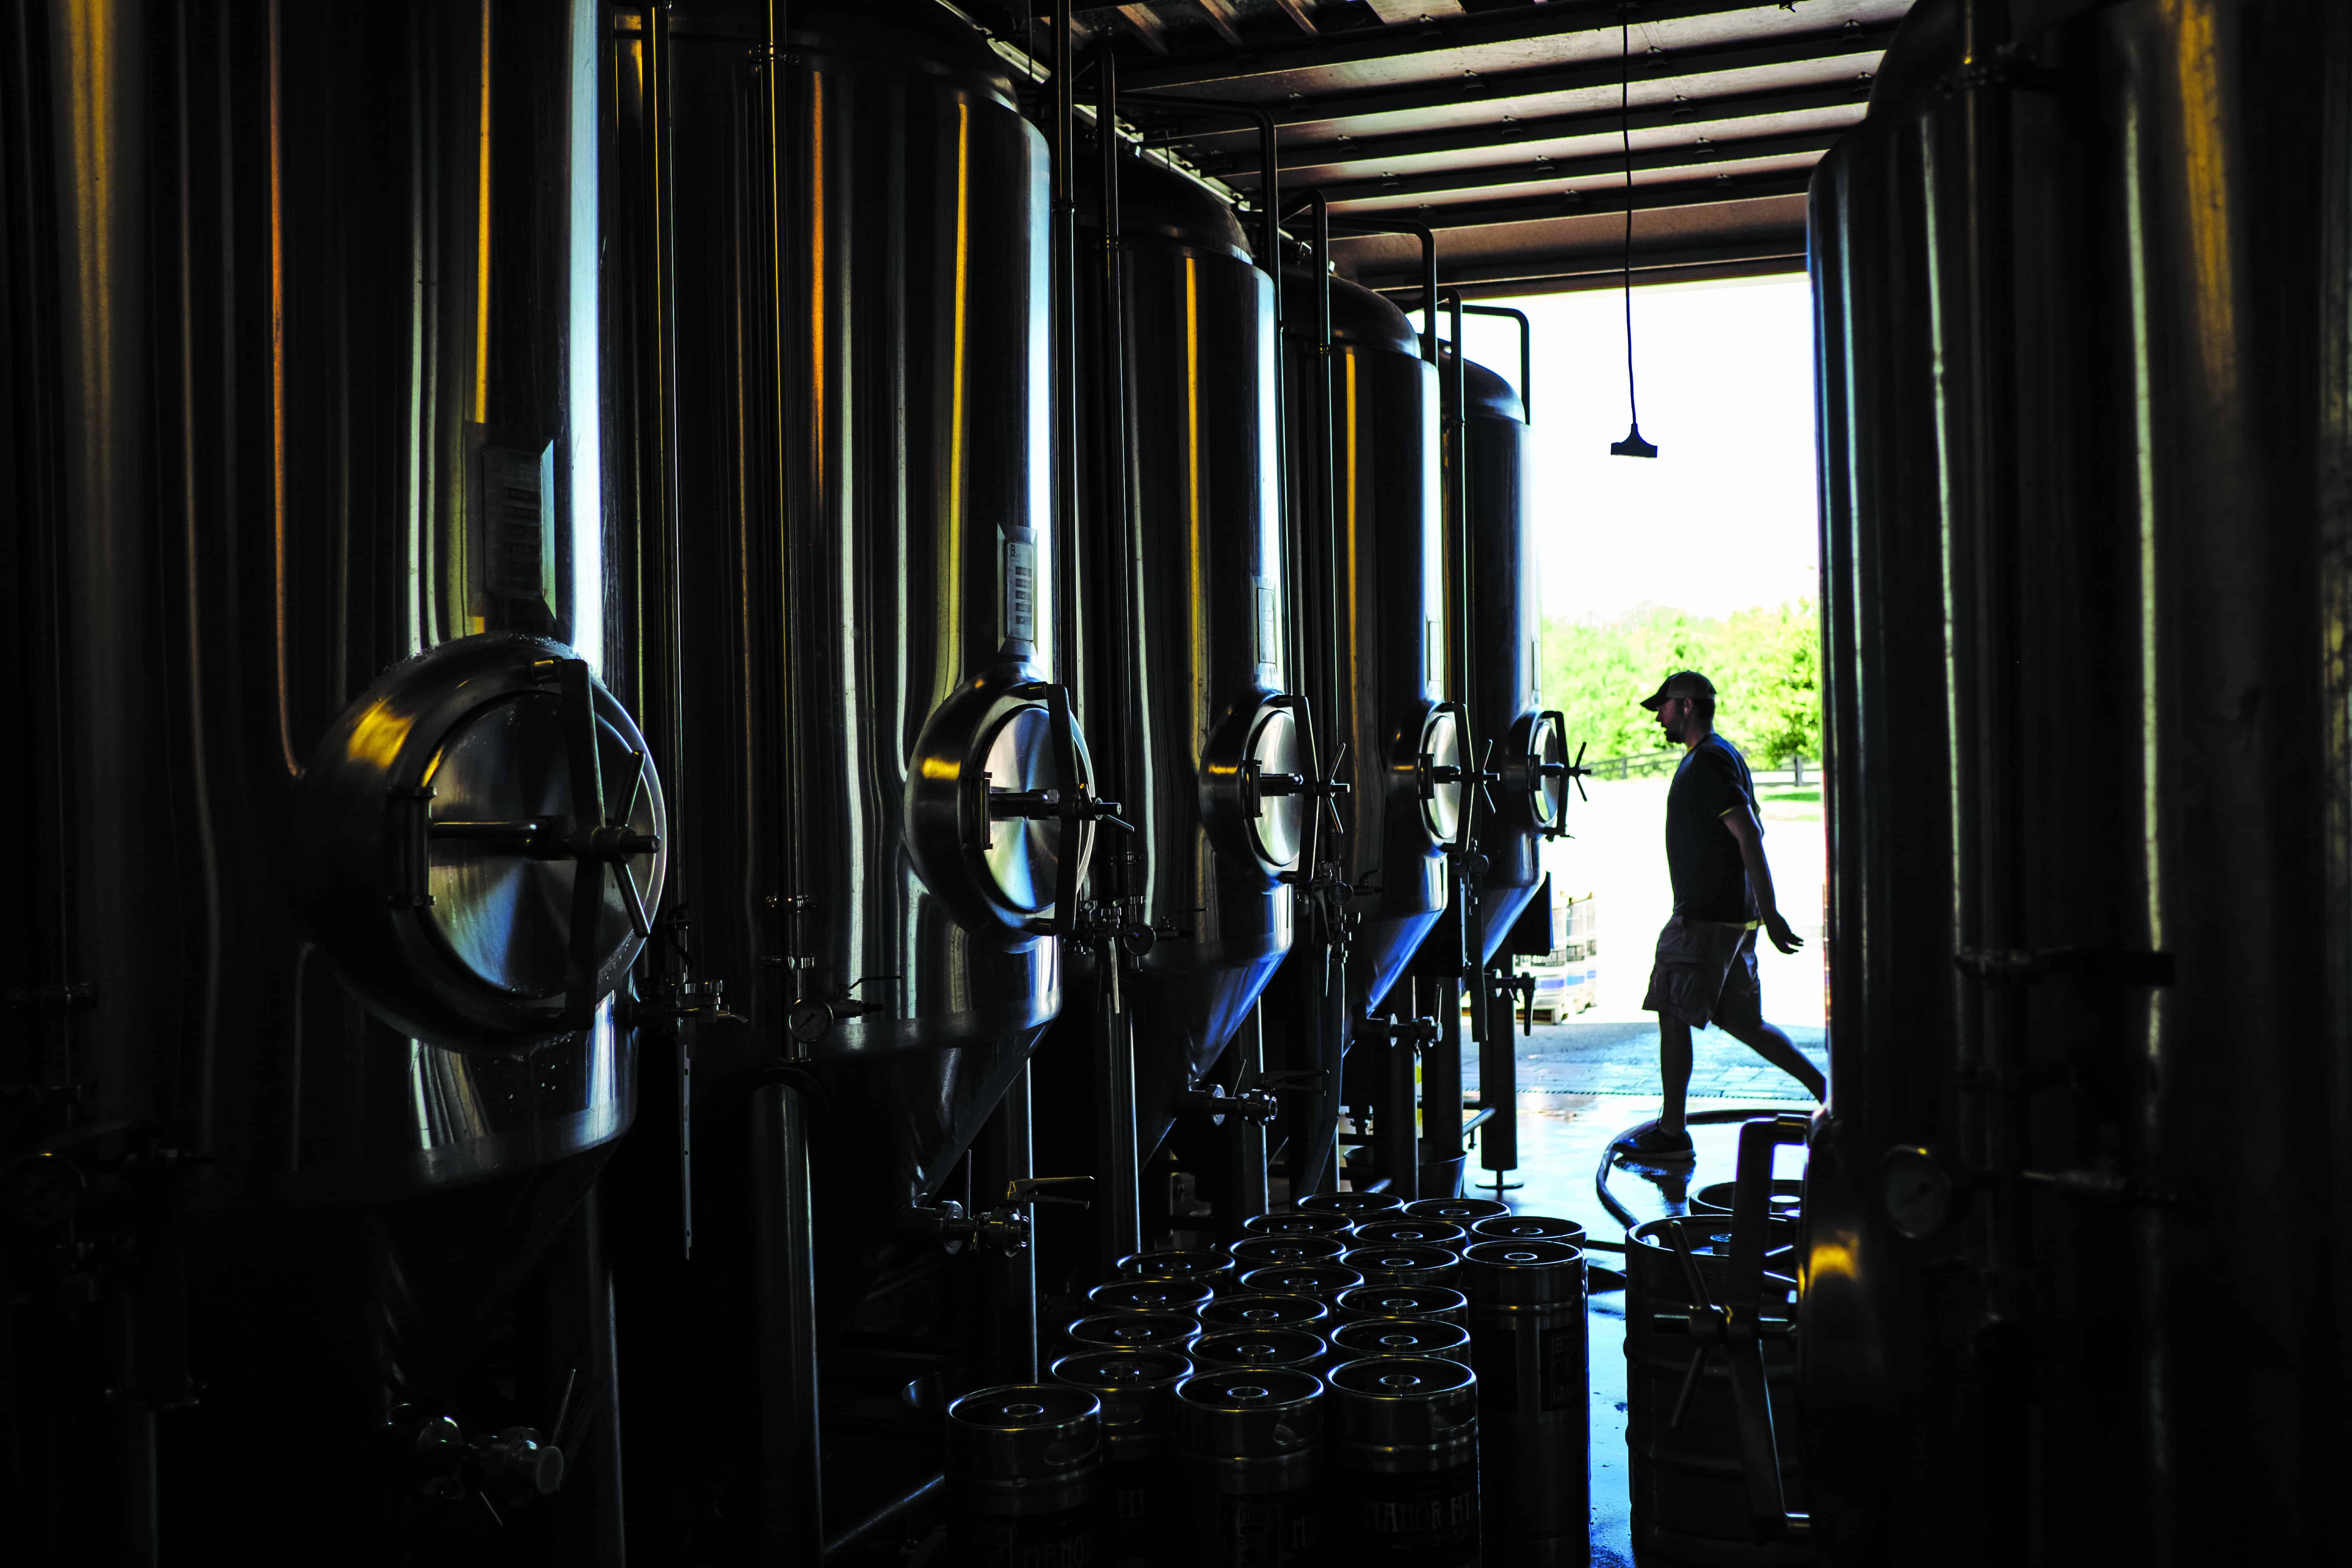 Head Brewer Kurt Krol walks by the brewery's 13 fermentation vessels.